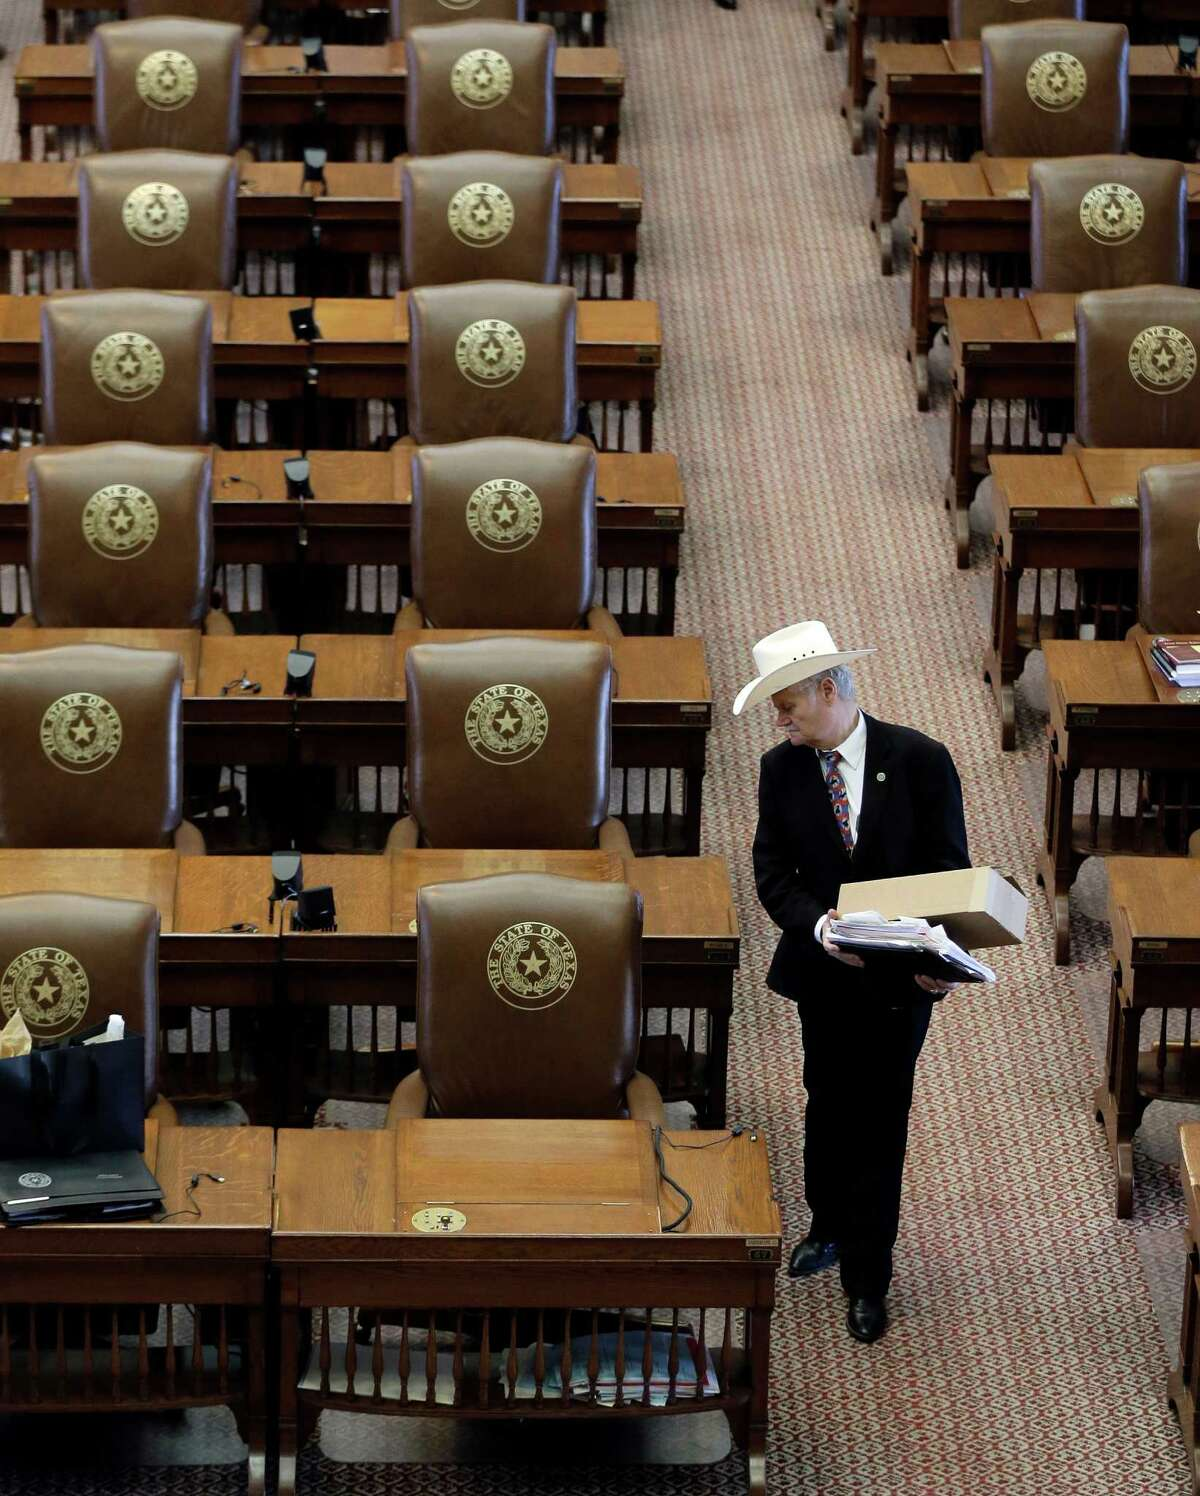 """Rep. Charles """"Doc"""" Anderson, R-Waco, and his fellow members of the House joined the Senate in adjourning early on the final day of the legislative session, Monday, June 1, 2015, in Austin. (AP Photo/Eric Gay)"""